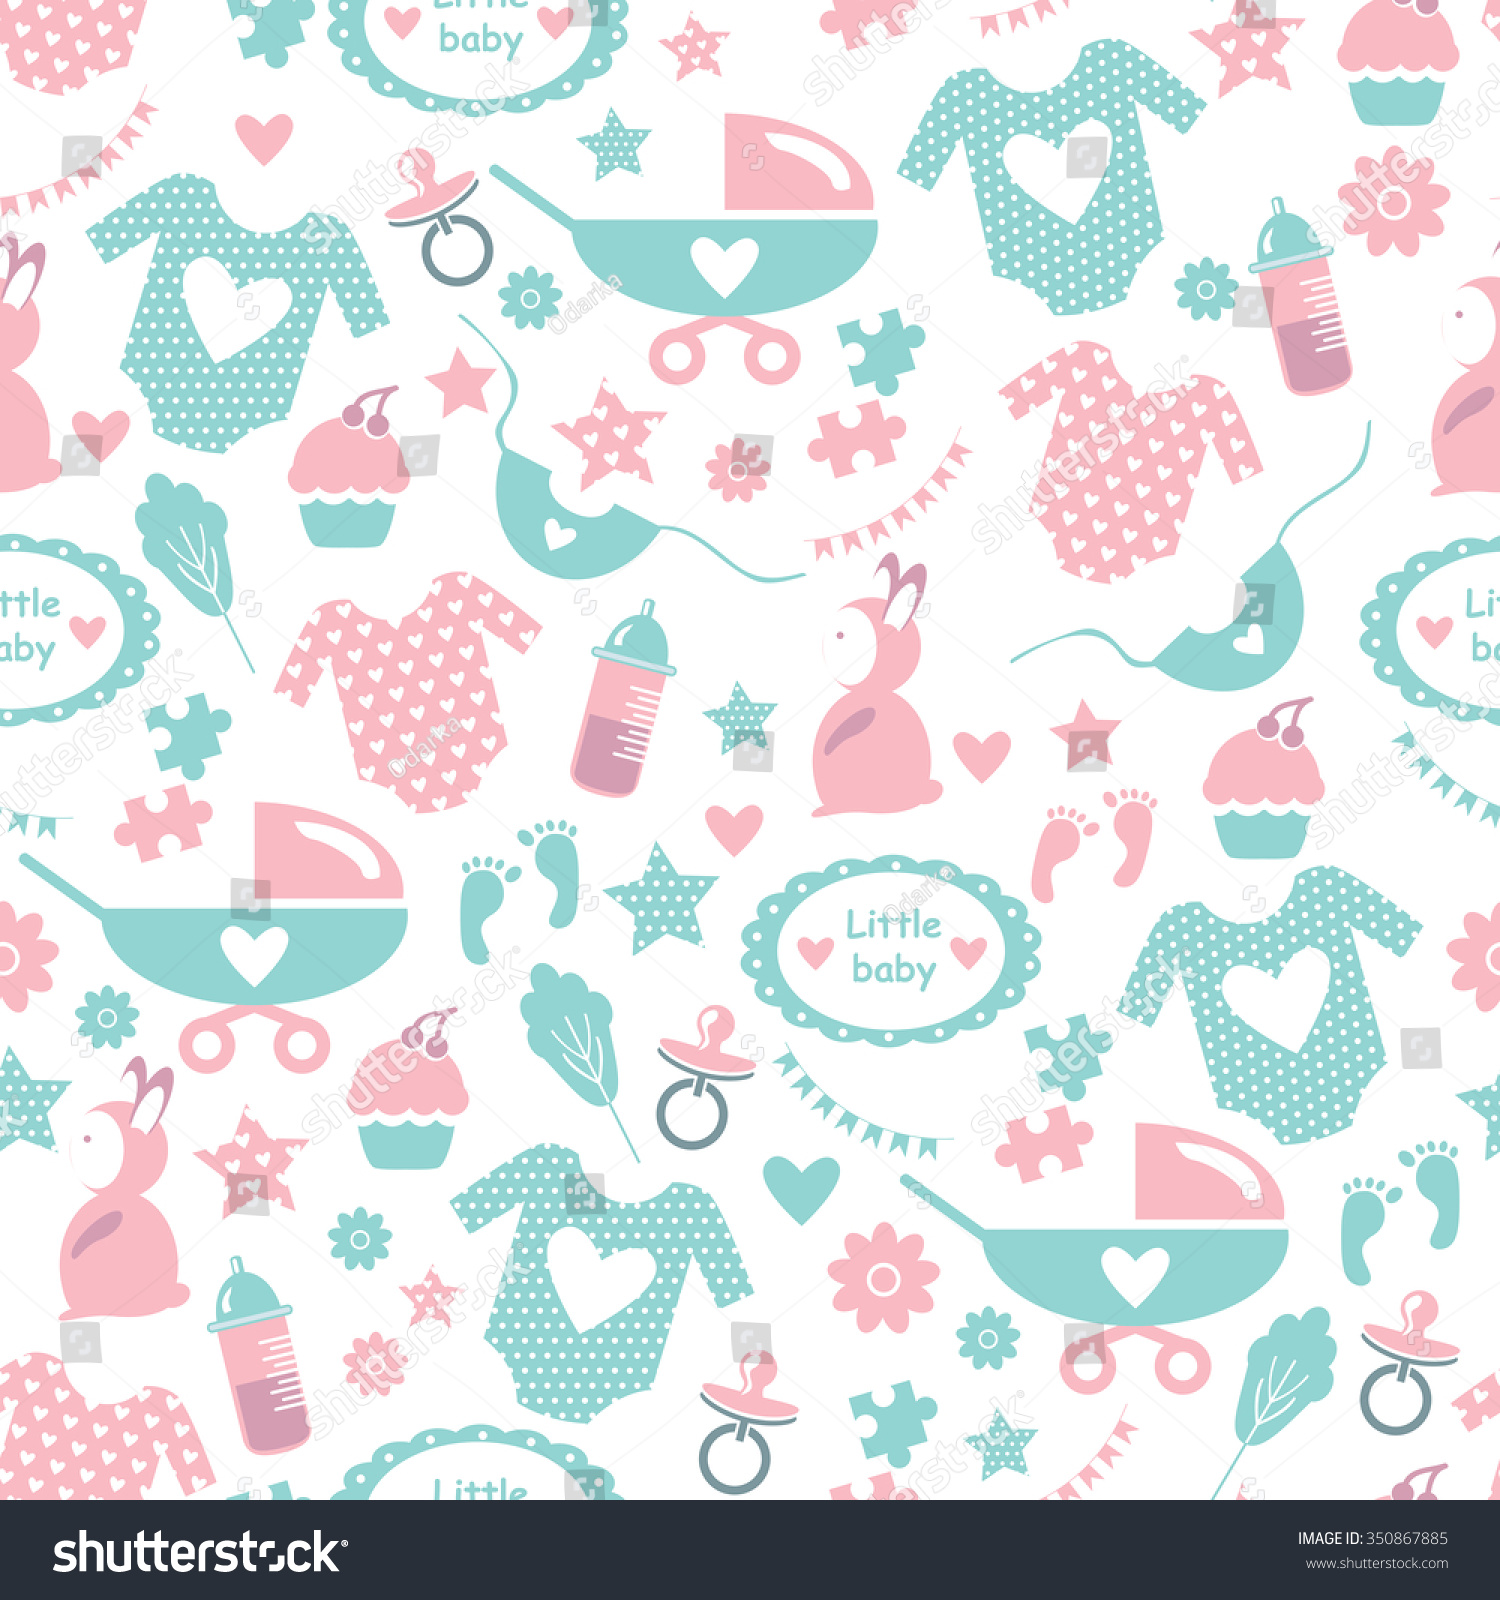 Seamless Baby Pattern For Baby Shower. Pattern With Accessories For Babies:  Baby Clothes,